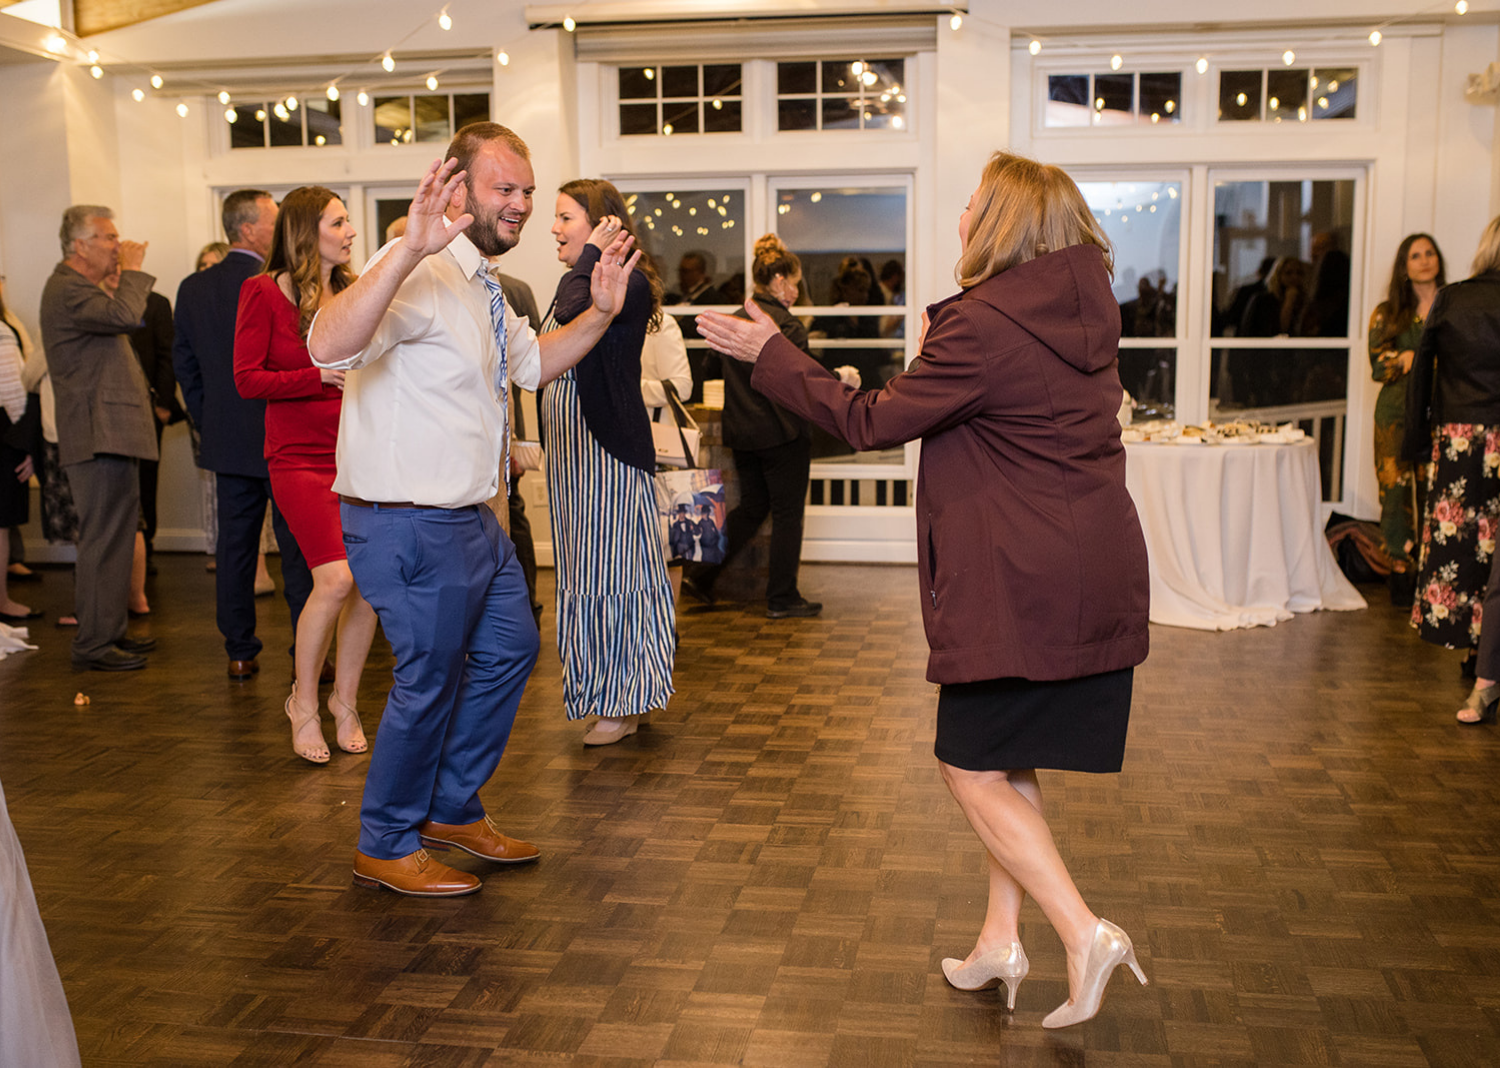 wedding guests dancing during the wedding reception